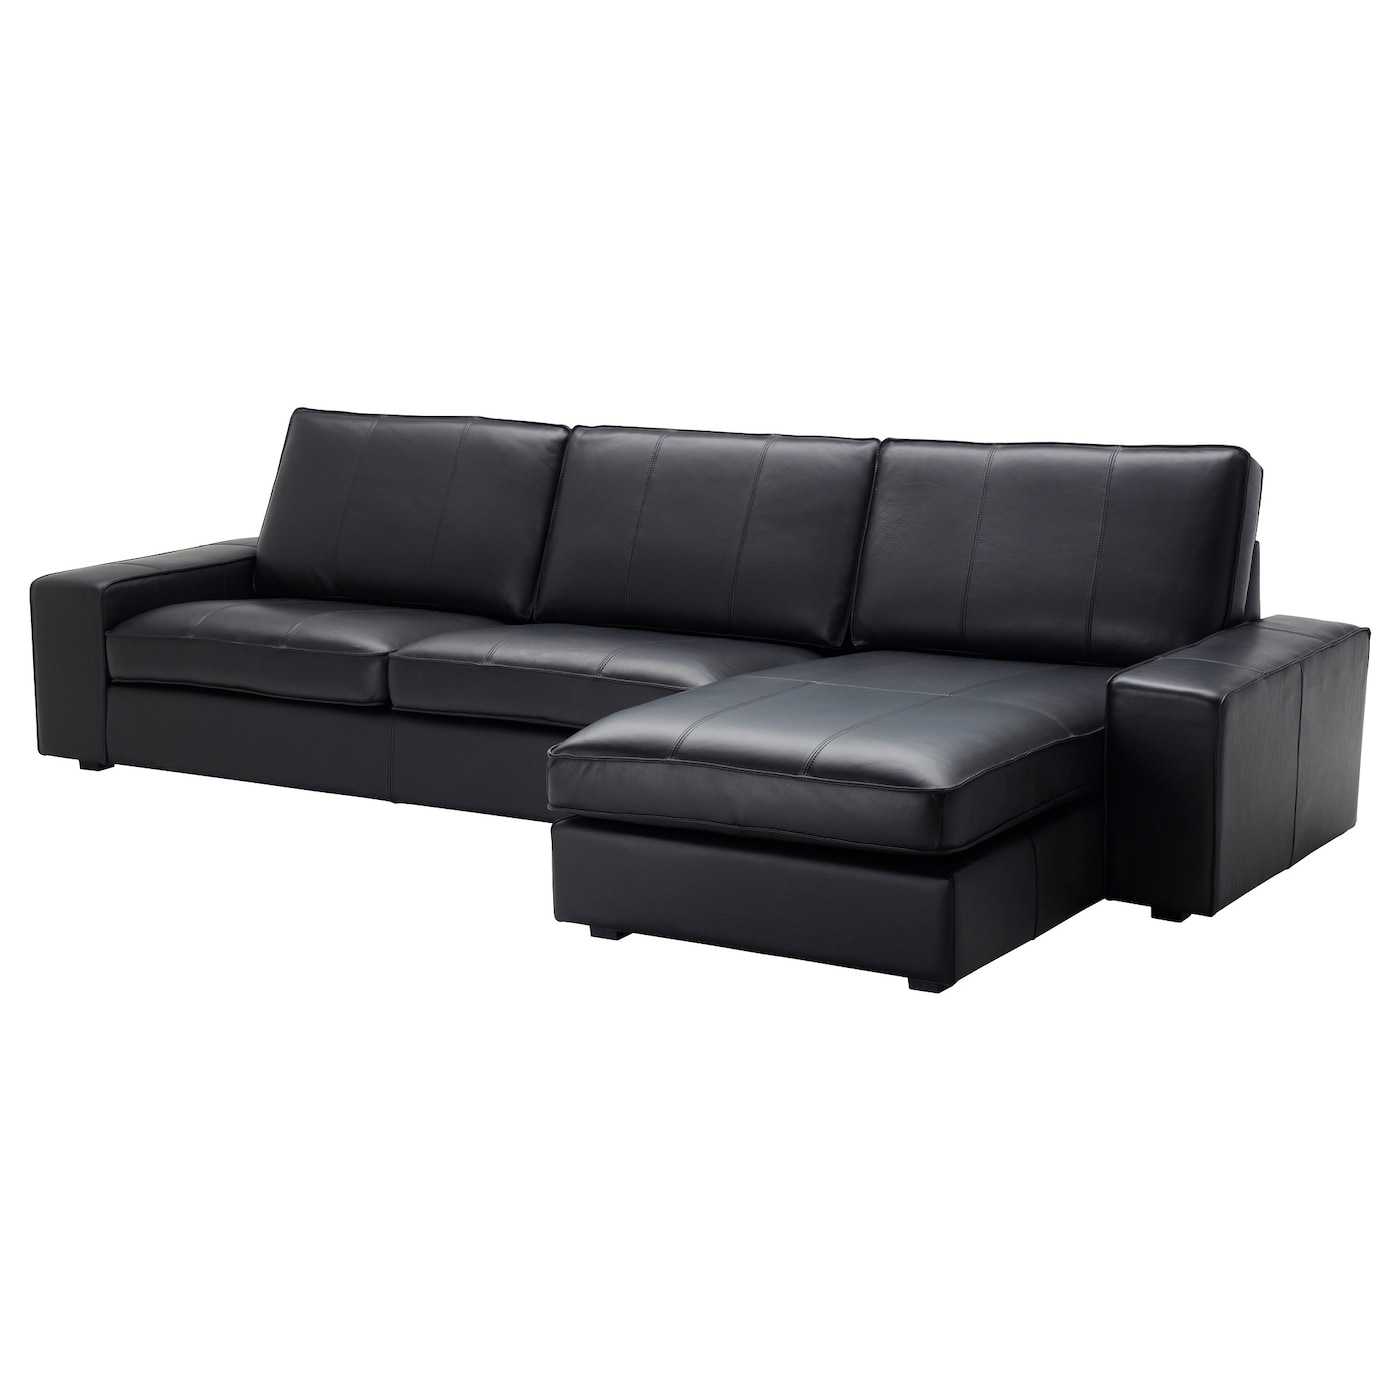 IKEA KIVIK 4-seat sofa The chaise longue can either be used freestanding or added onto the sofas.